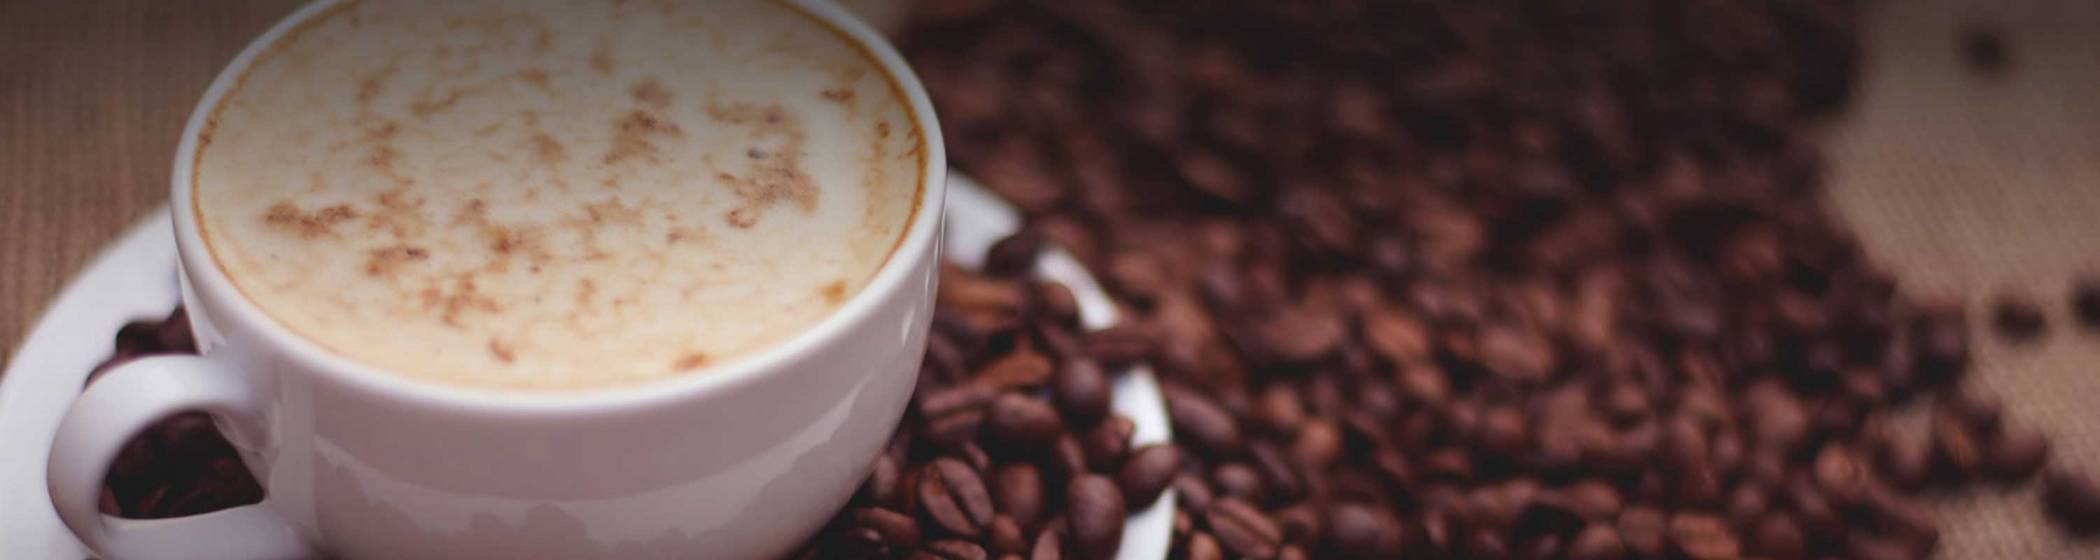 A cup of coffee with roasted beans scattered around